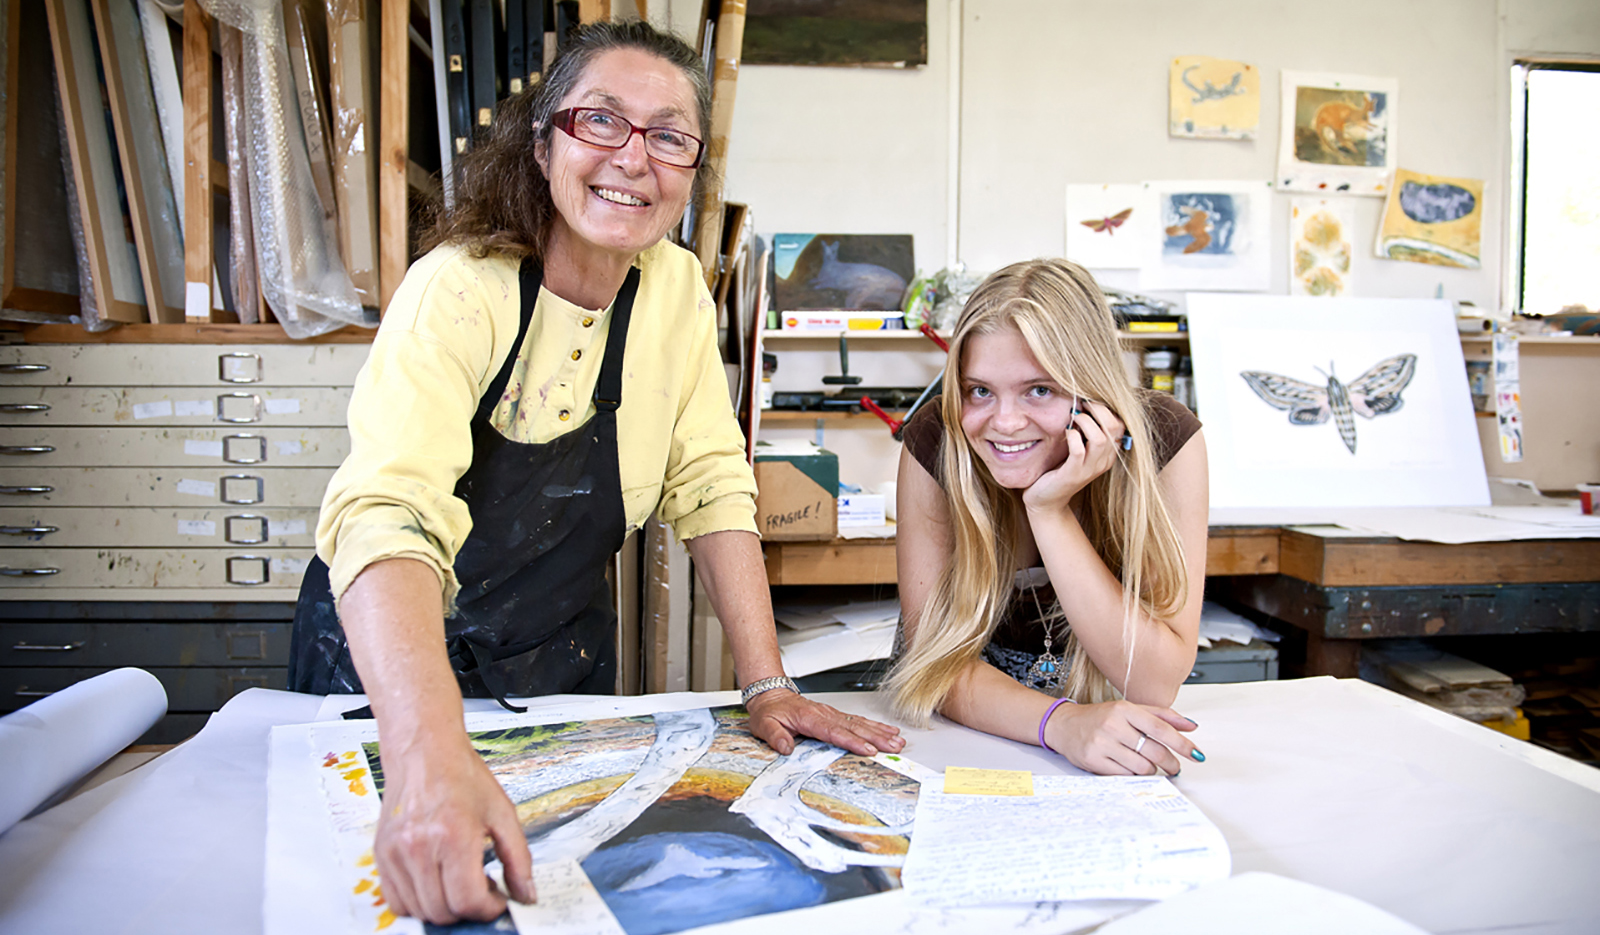 Jenny Clapson has spent much of her career nurturing and encouraging young artists.